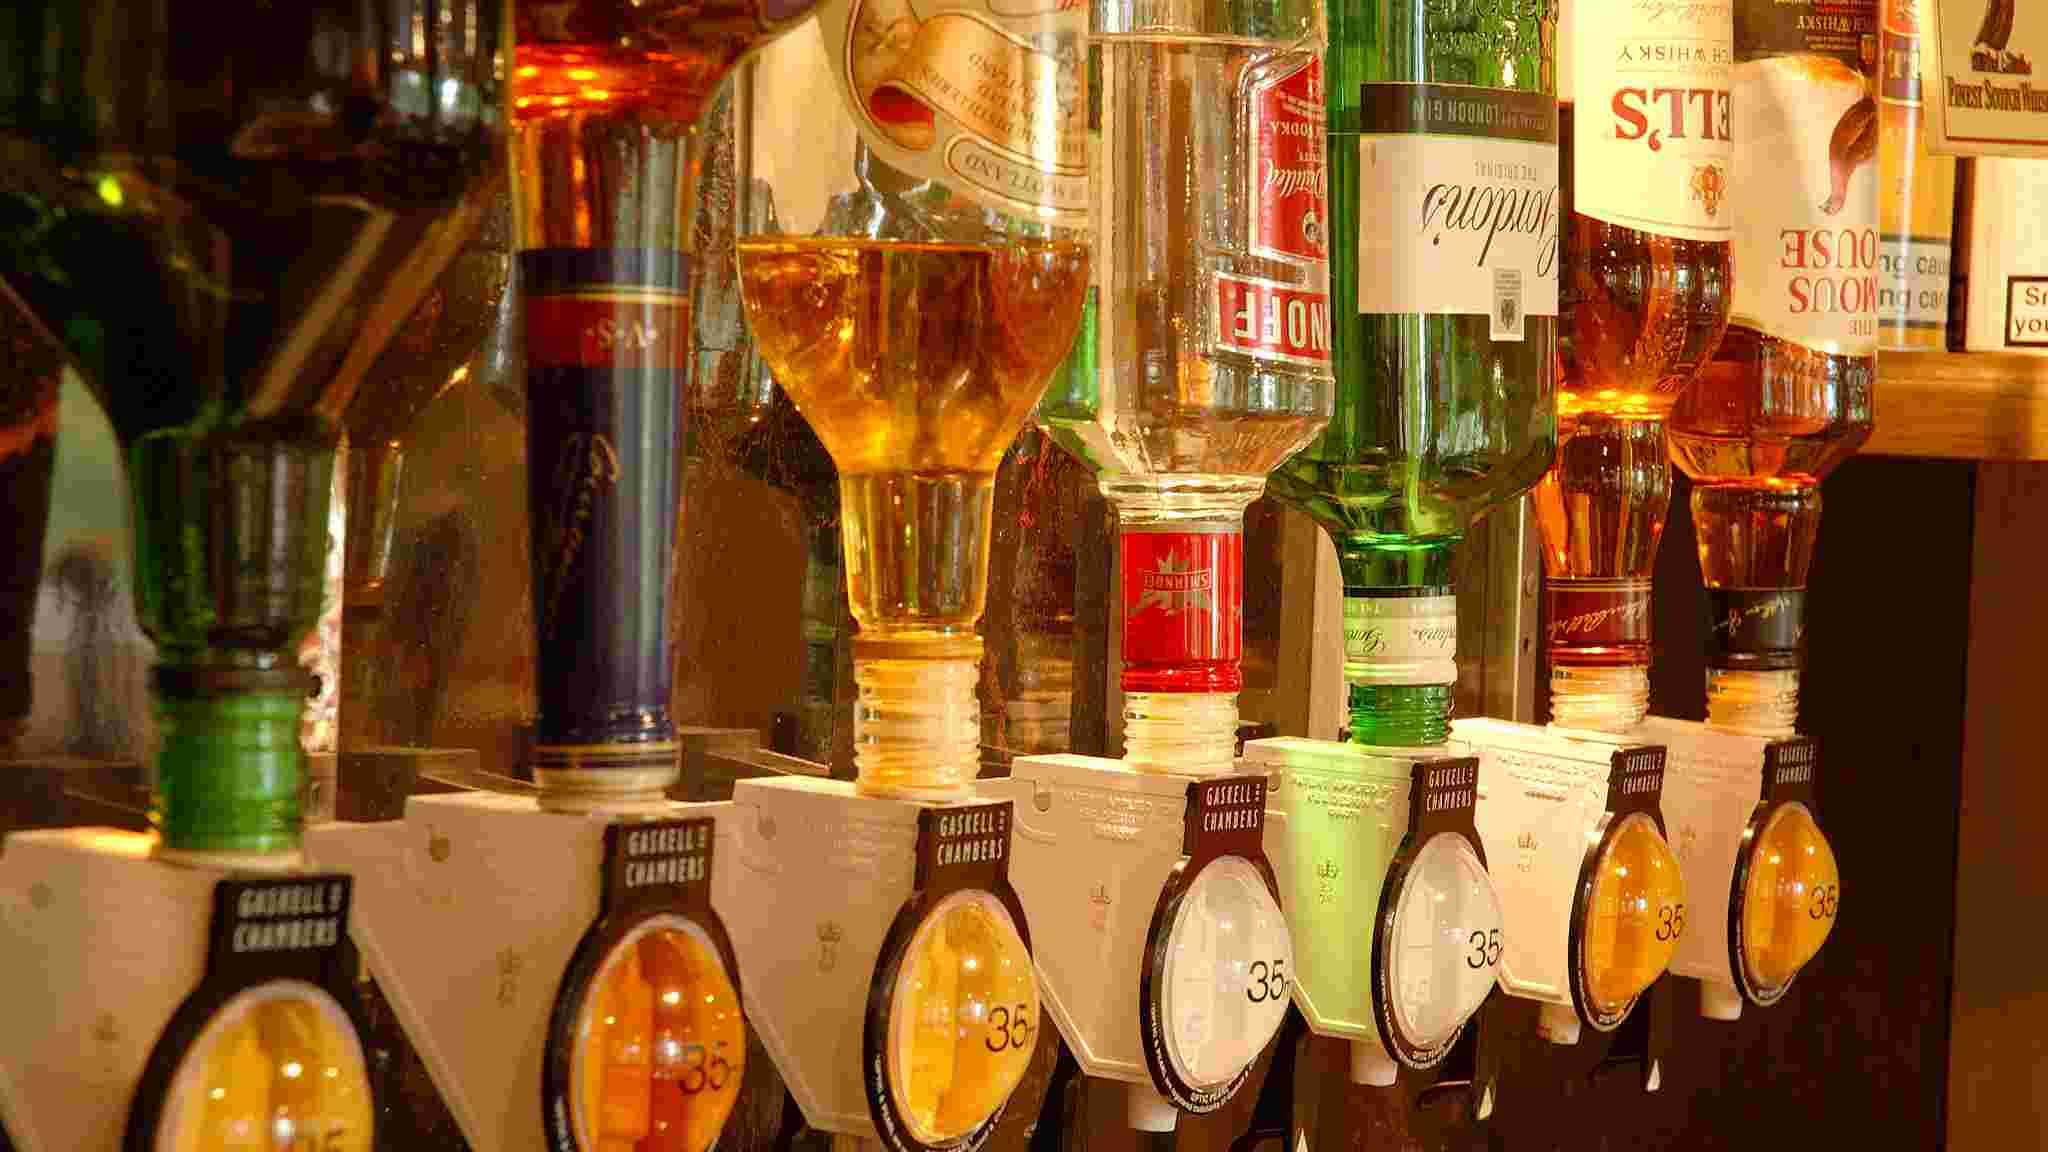 UN: Excessive drinking killed over three million people in 2016